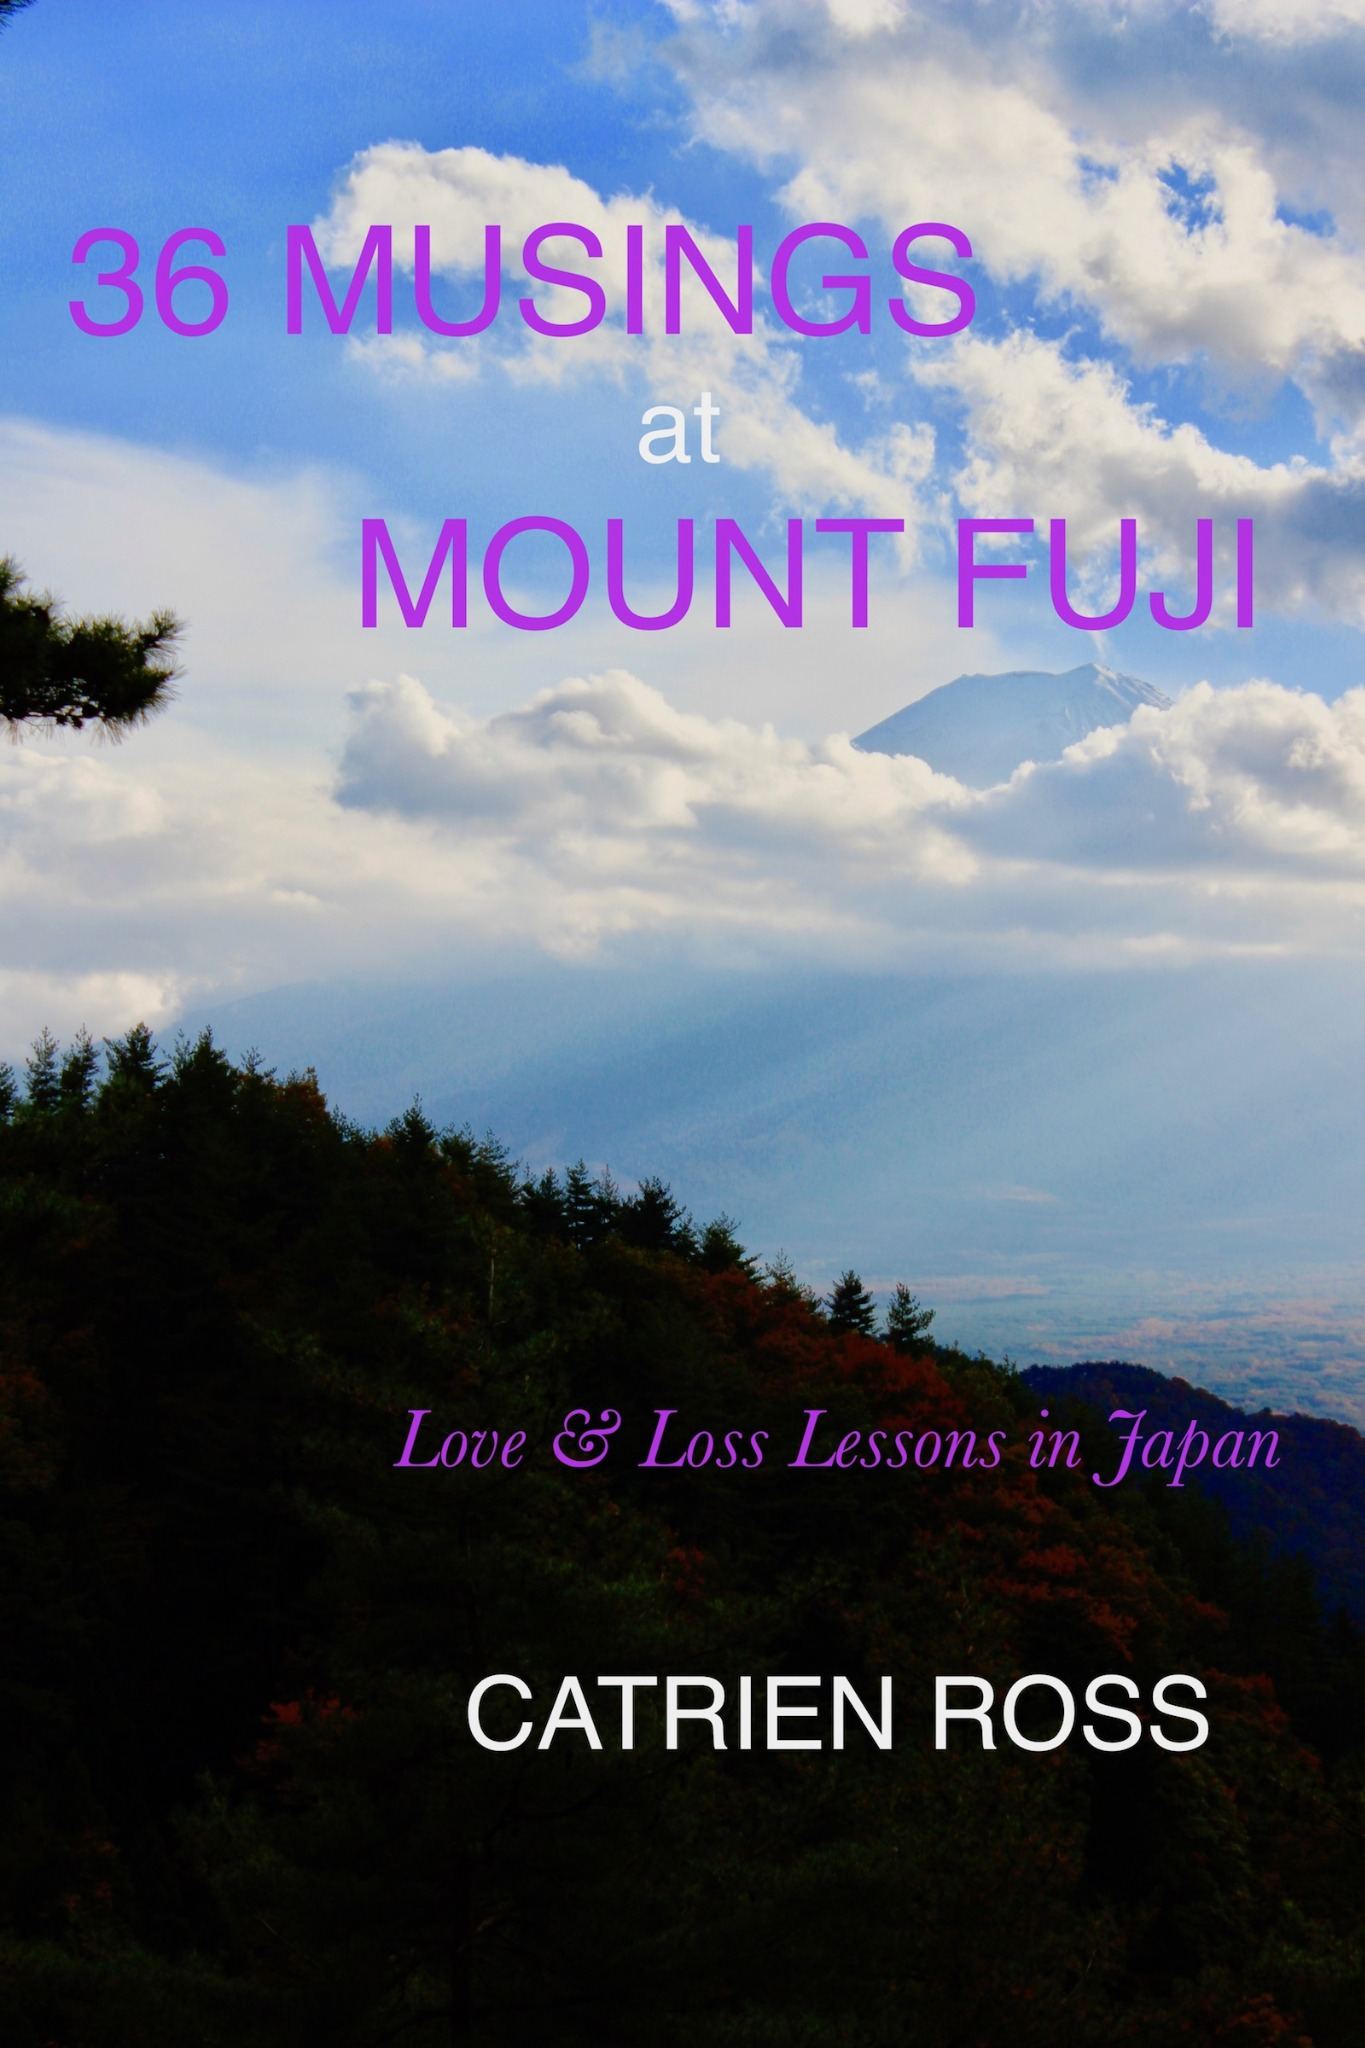 36 MUSINGS AT MOUNT FUJI